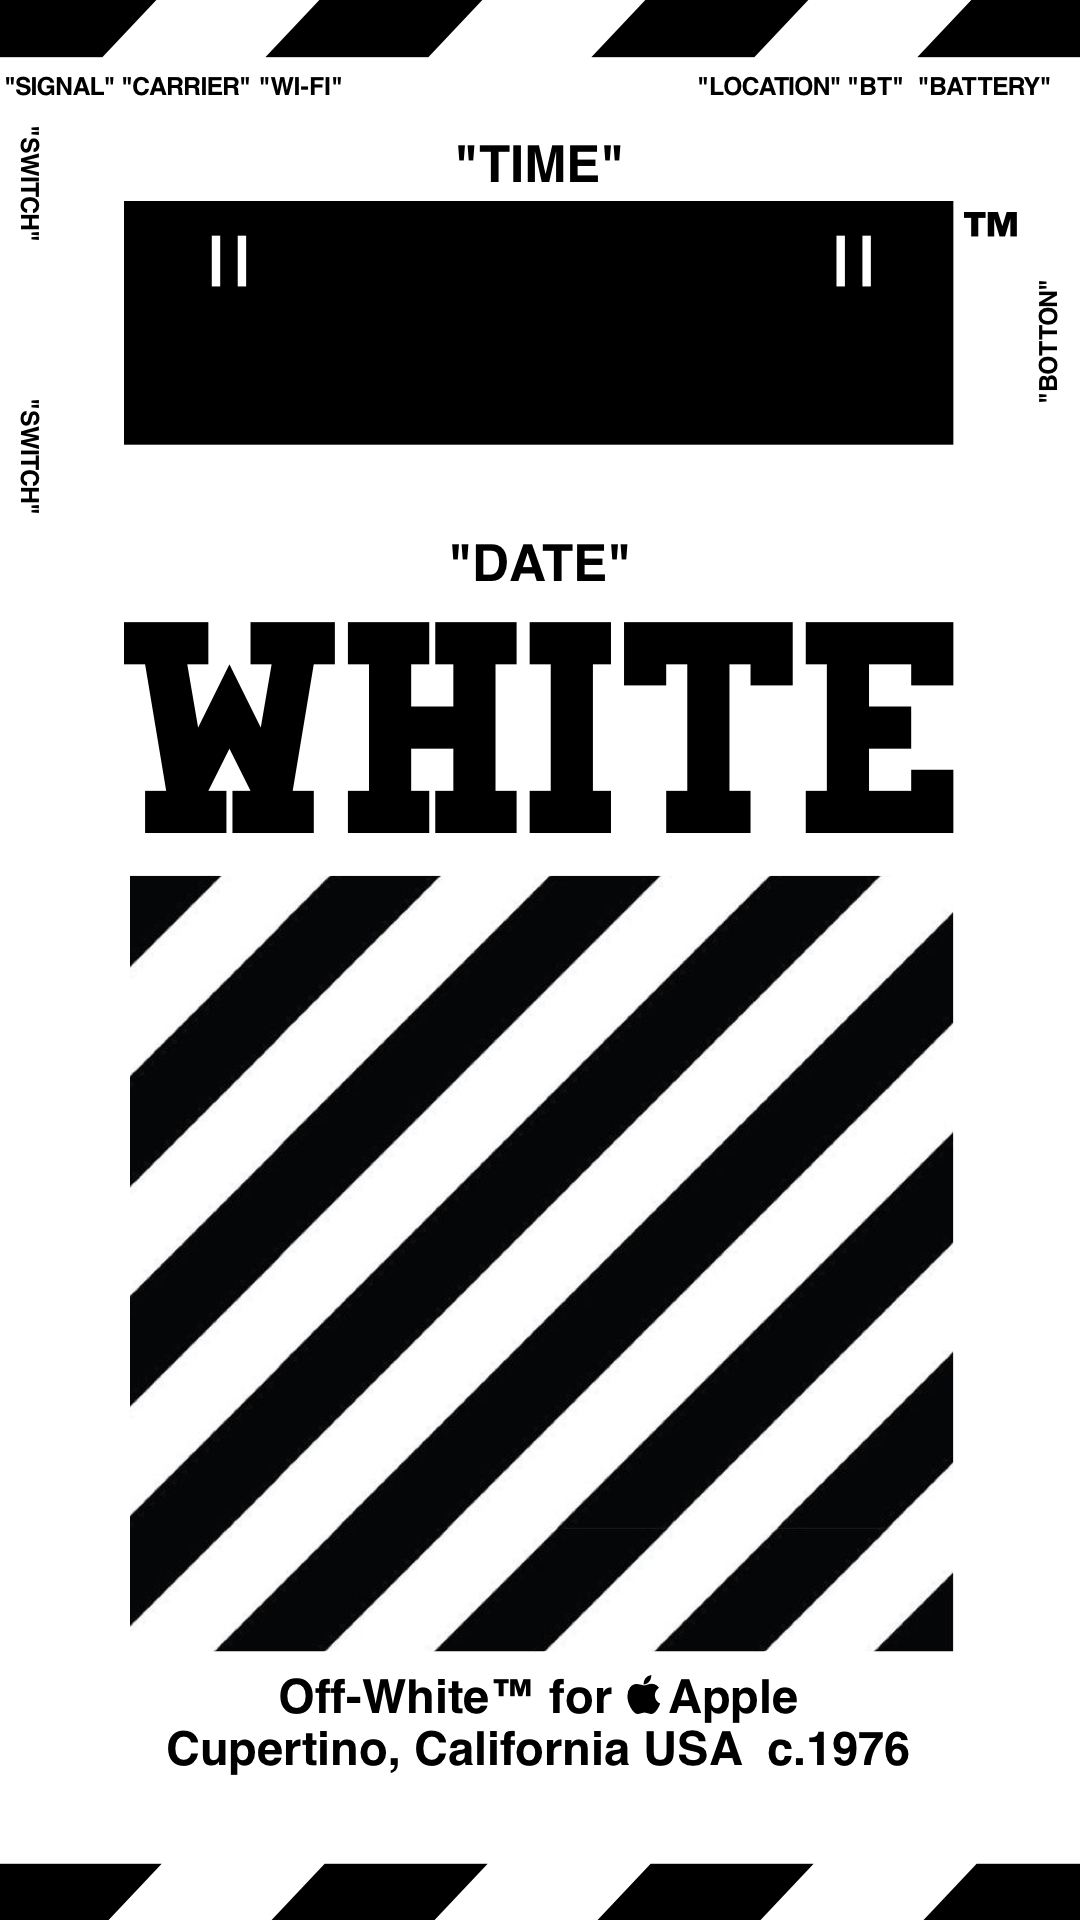 PAPEL PINTADO Off-White ™ IPHONE 壁紙 18/4 / 3-8 OFFWHITE オ フ ホ ワ イ ト